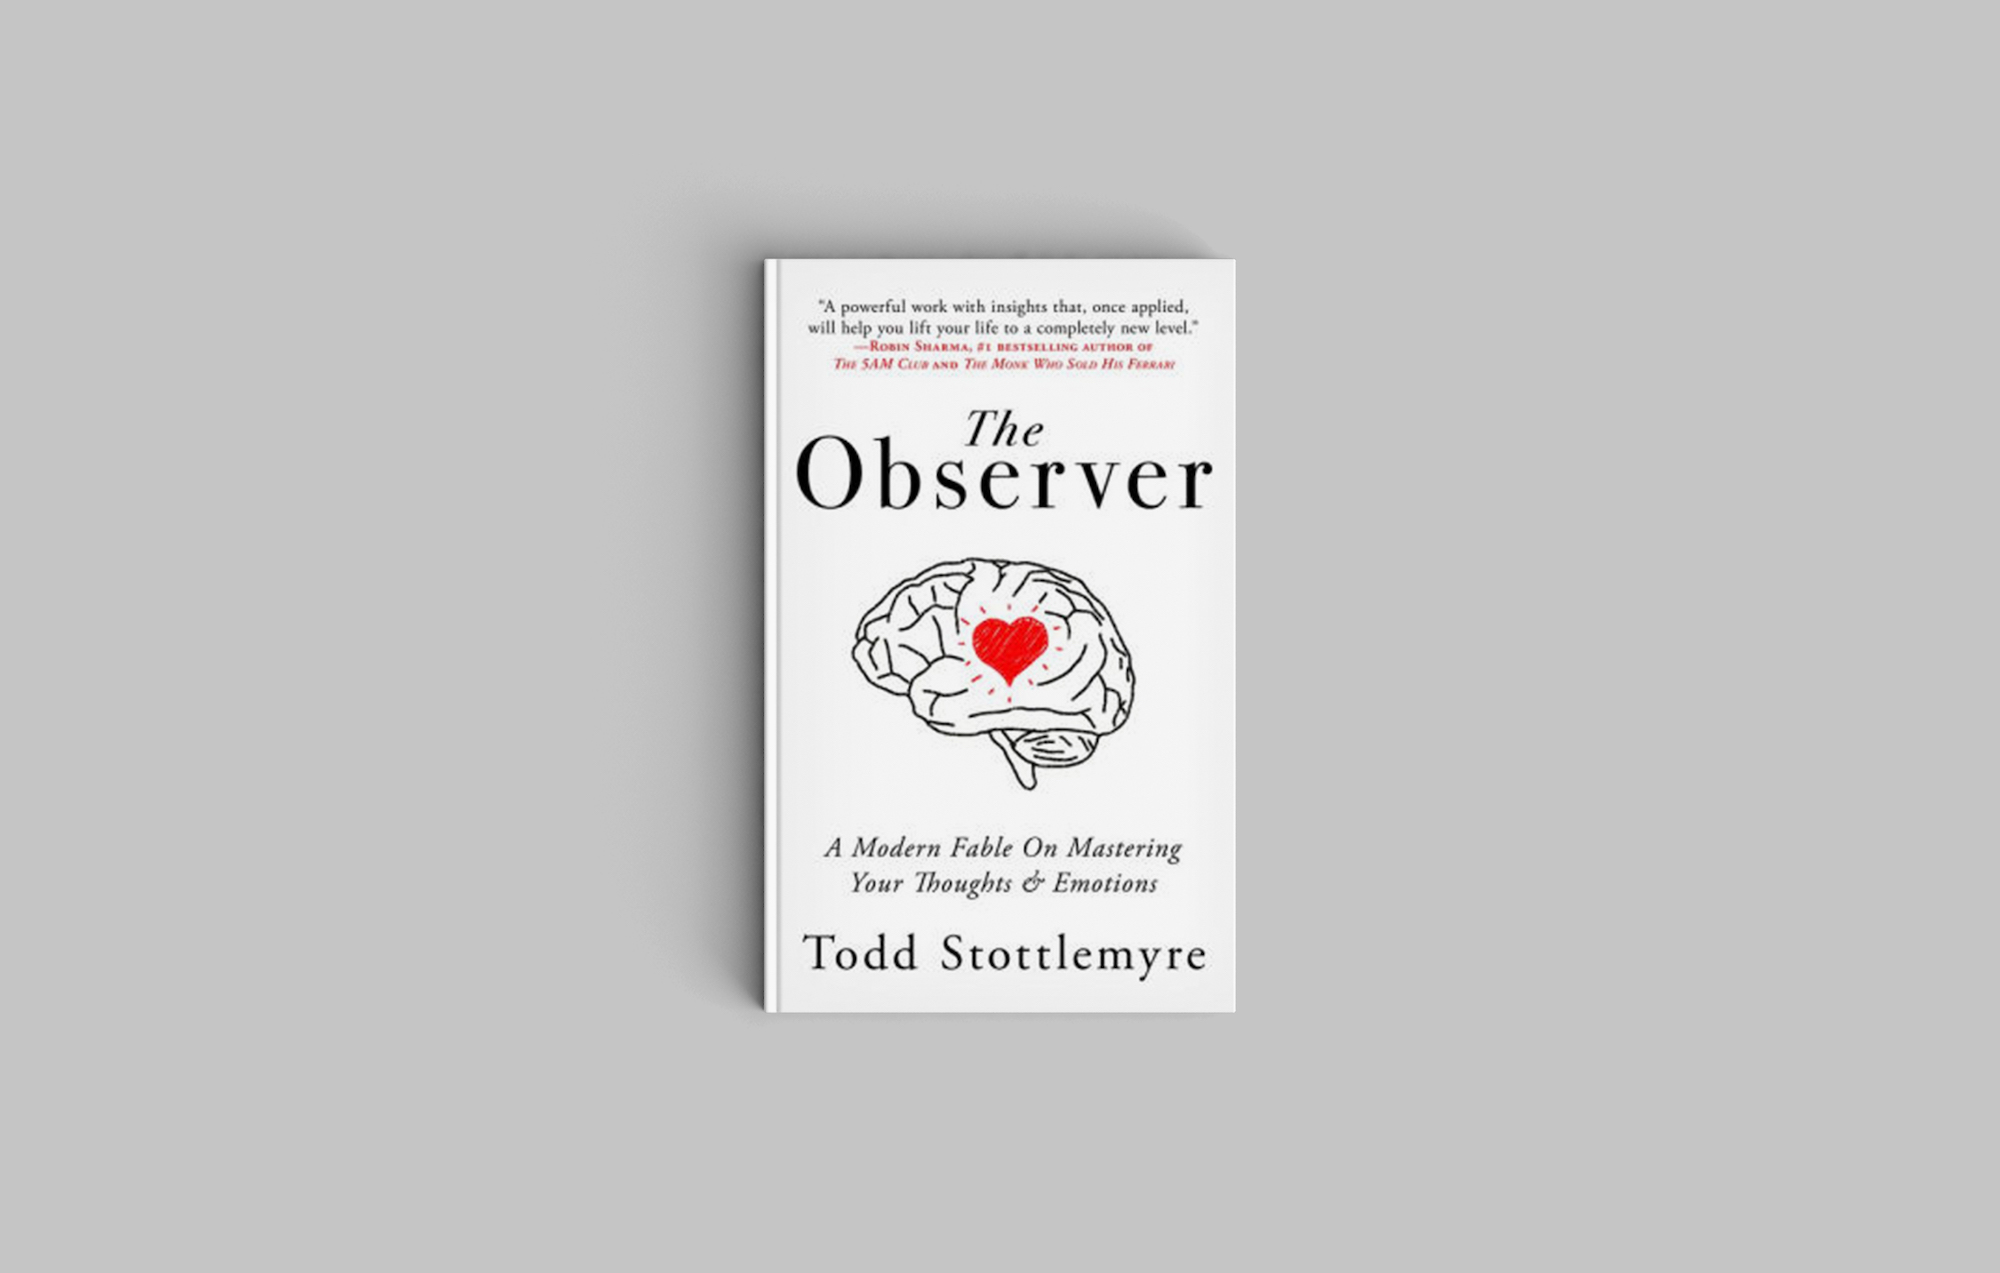 the observer by todd stottlemyre